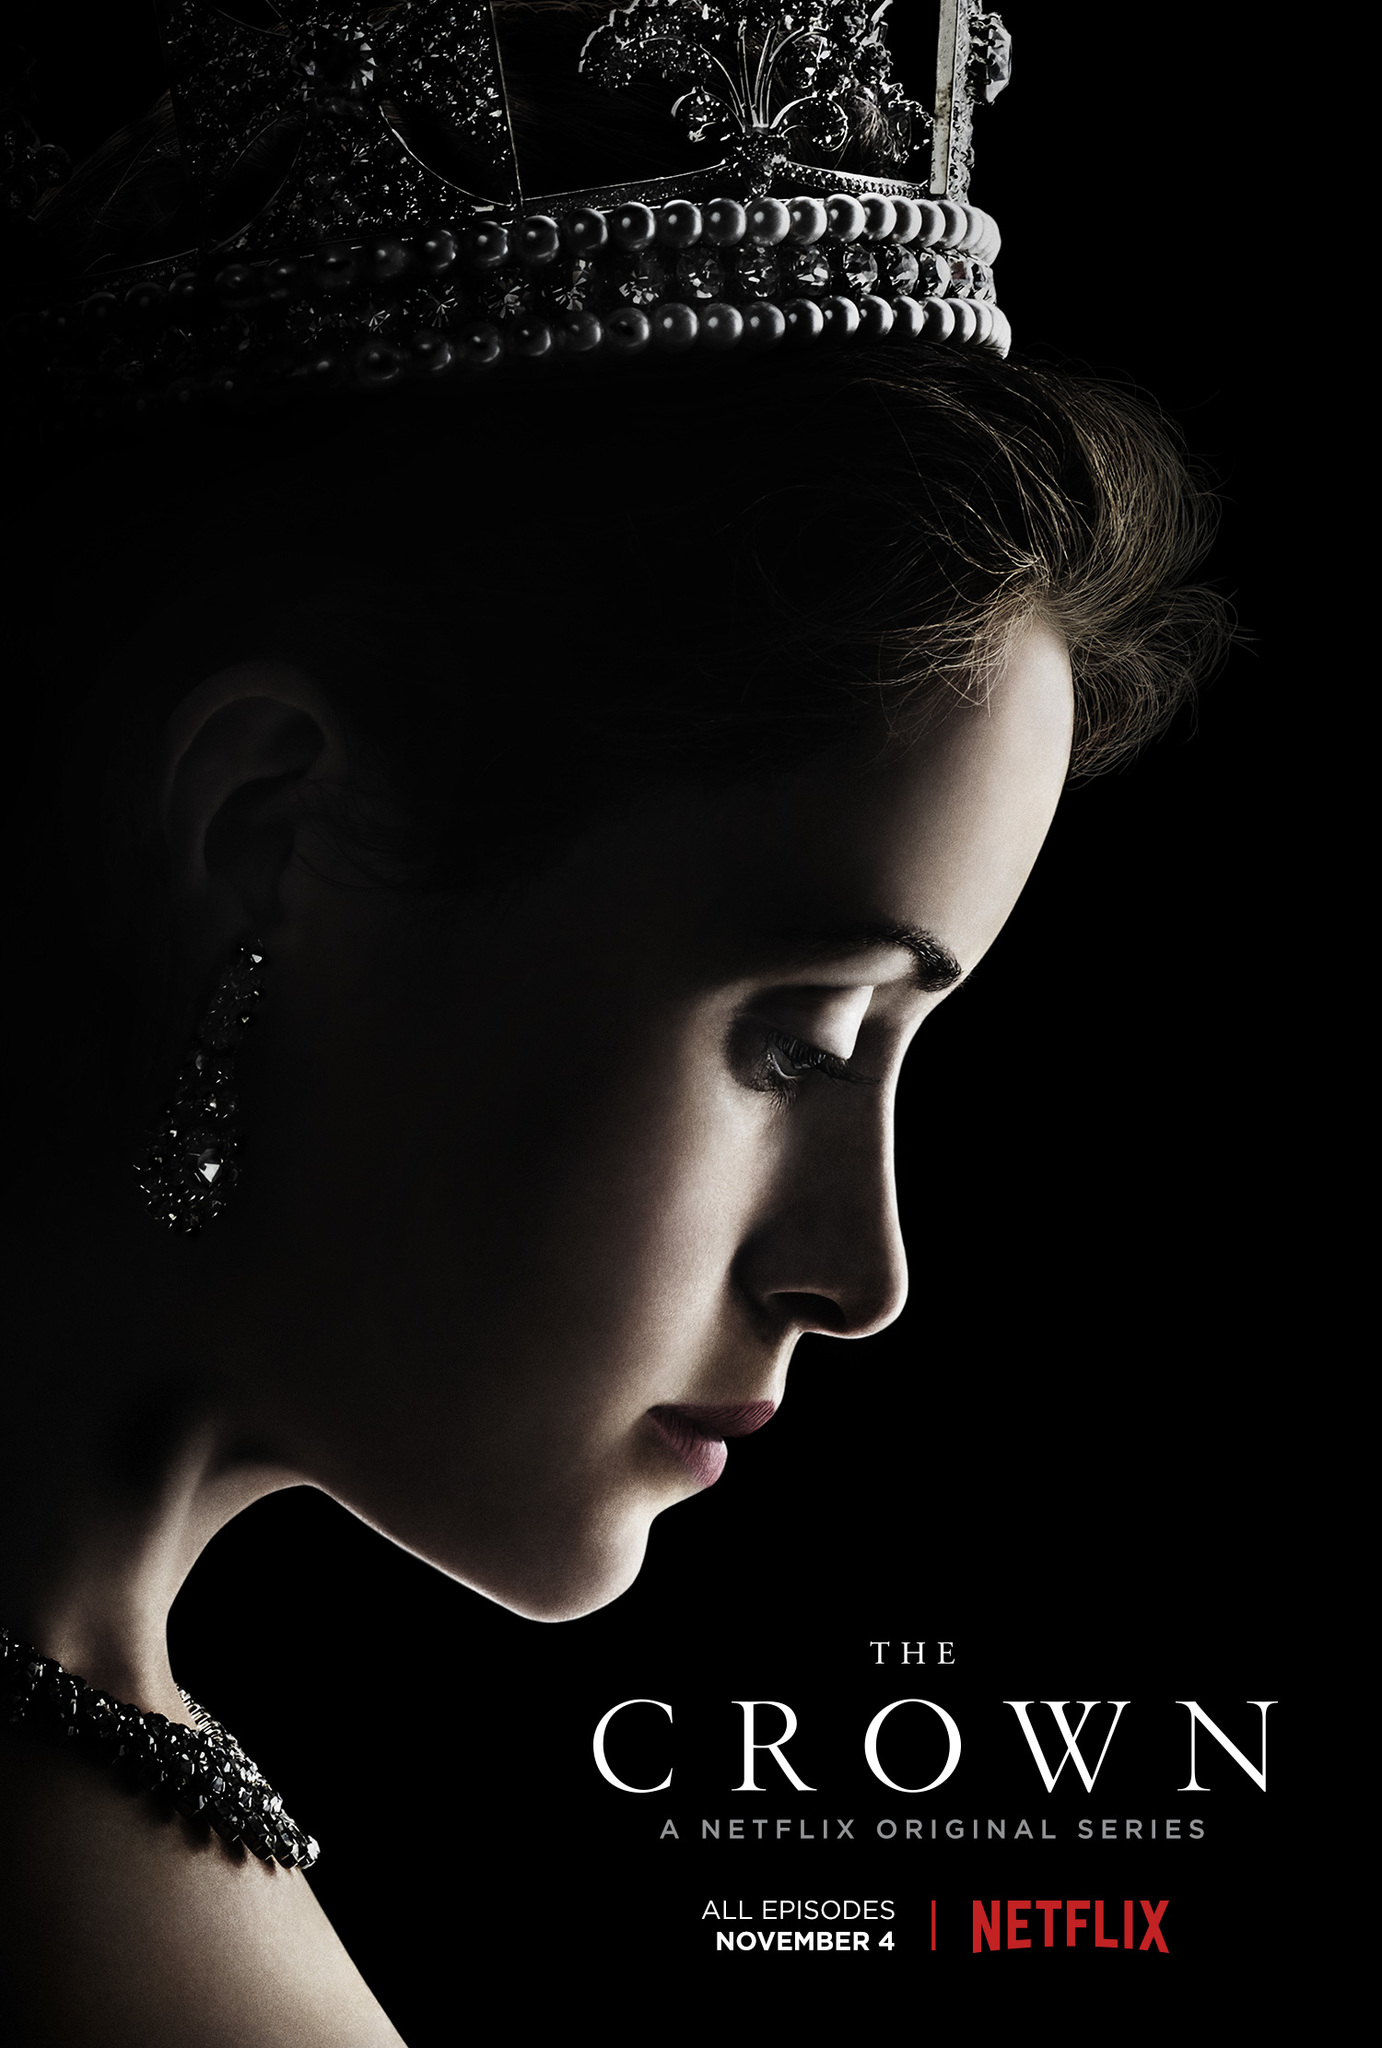 The Crown S01 EP08 Hindi Dubbed